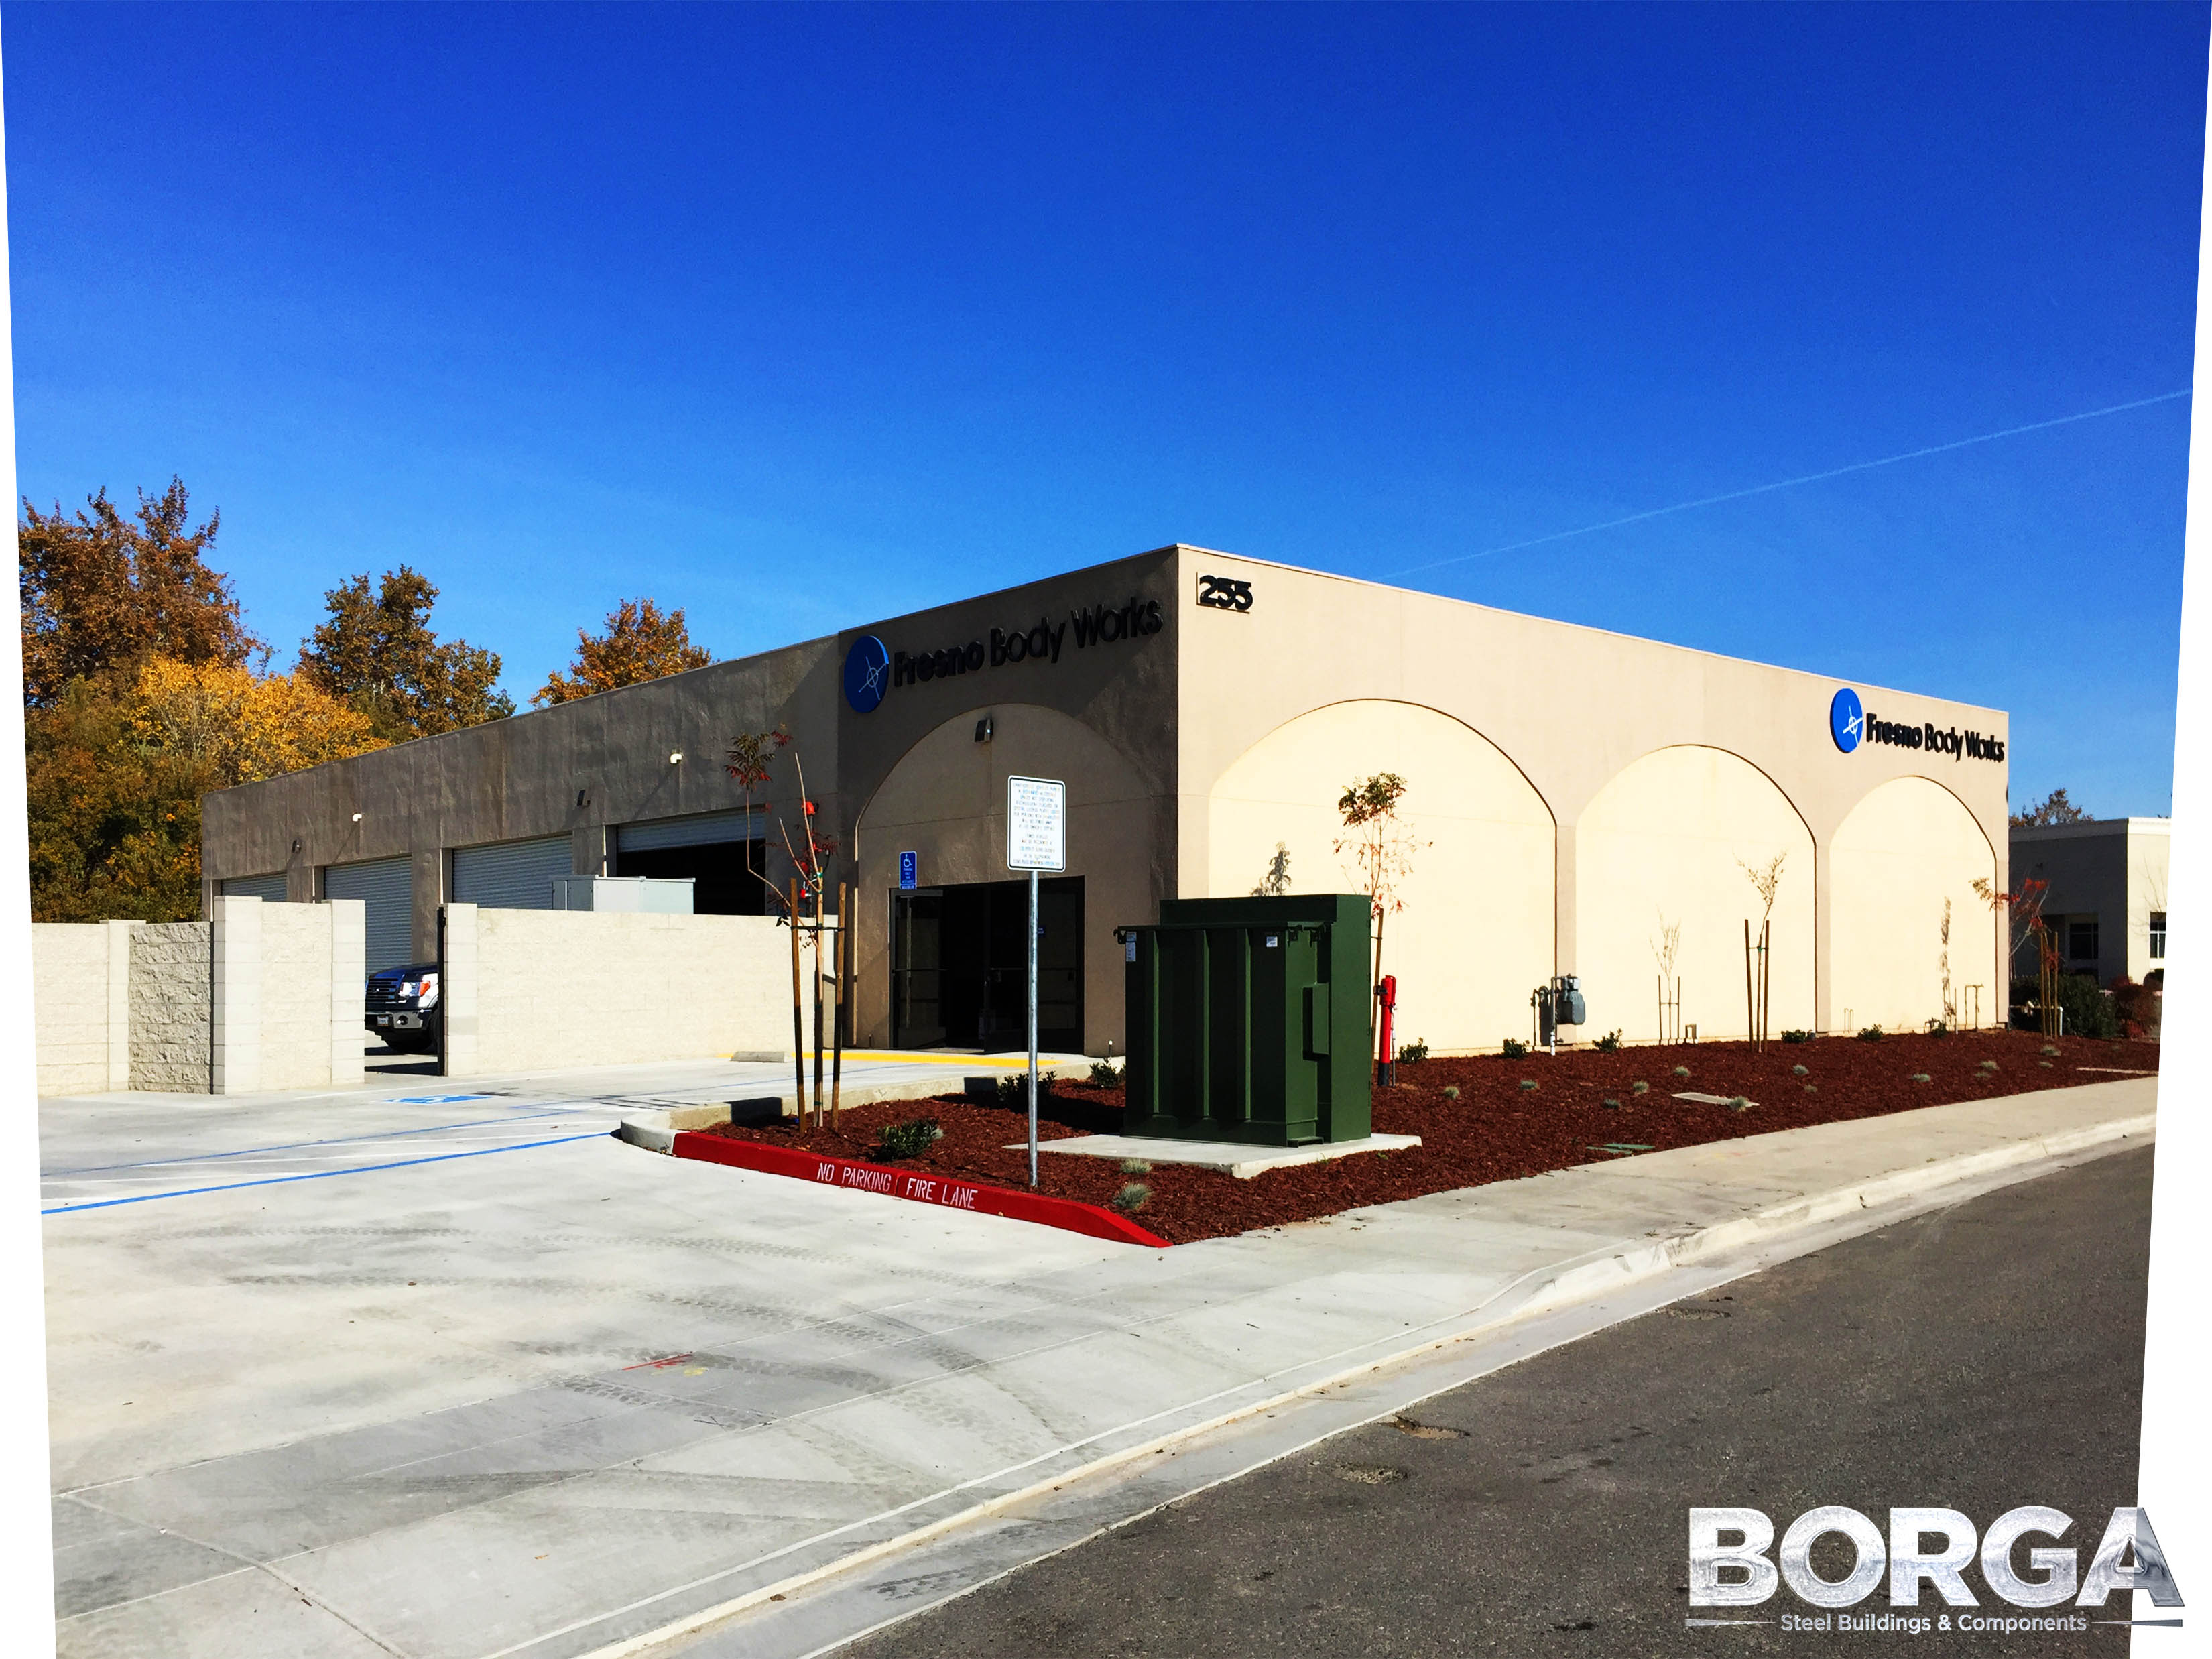 borga steel buildings components fresno bodyworks ca